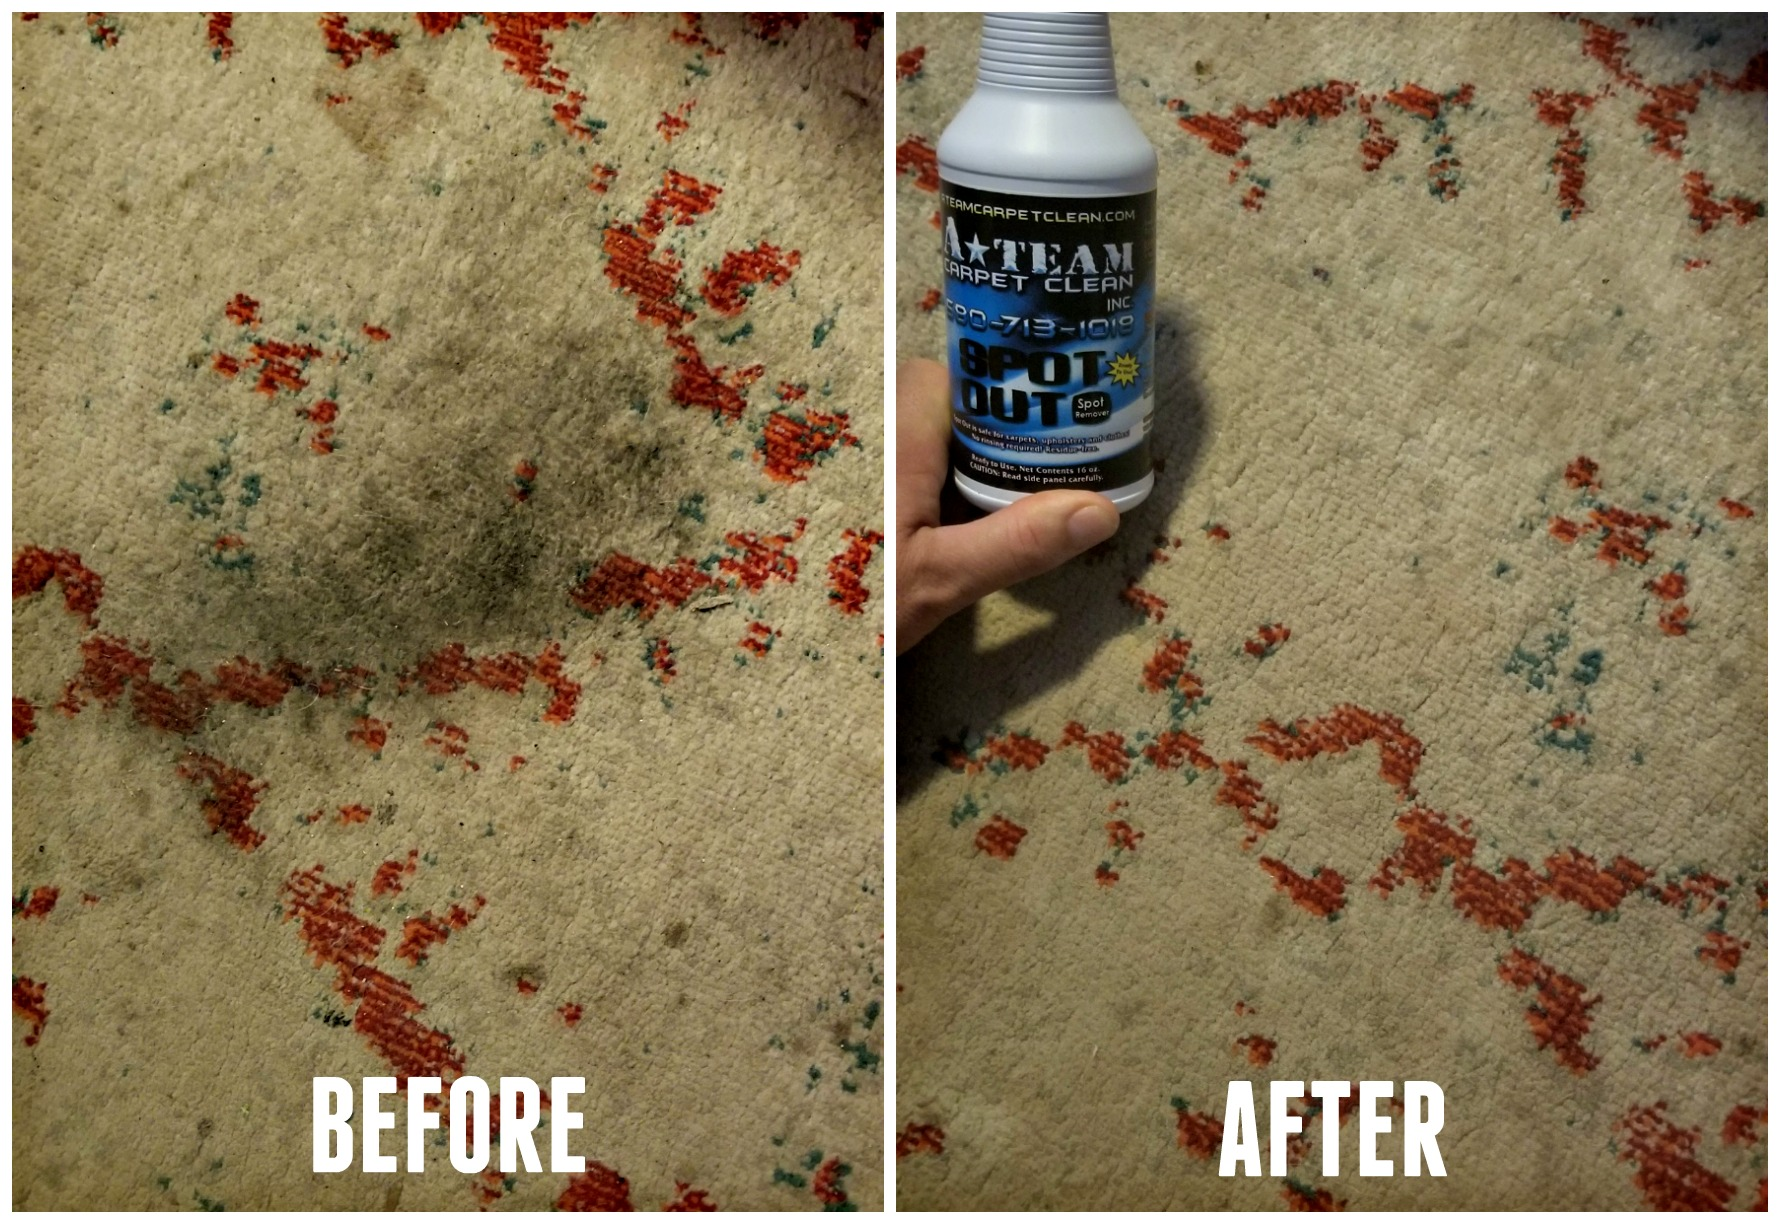 spot out stain remover before after